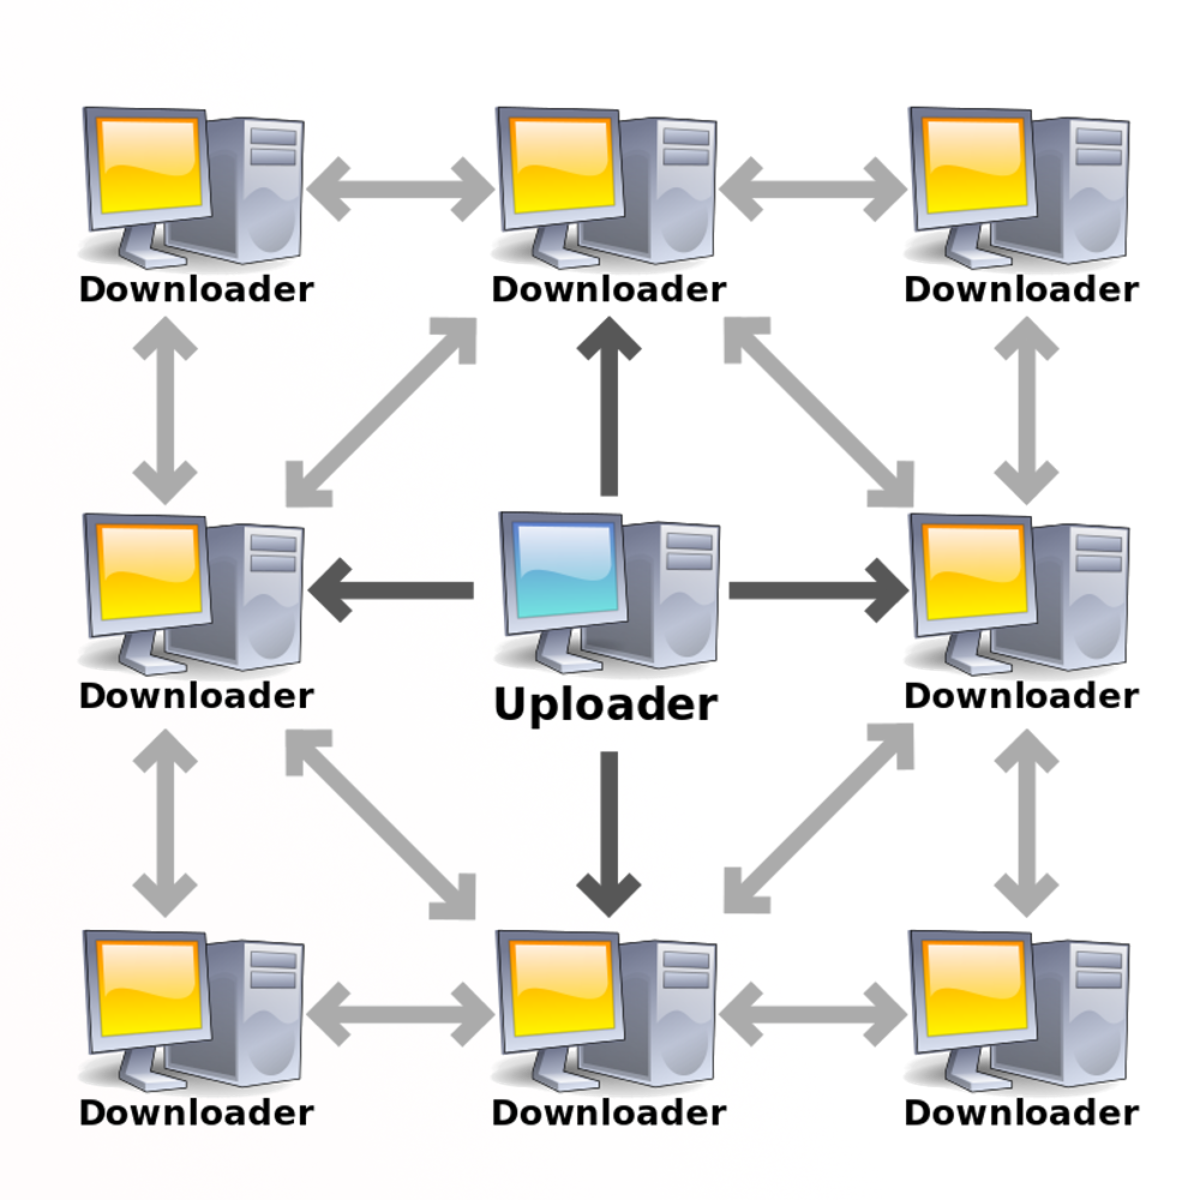 An example of a BitTorrent network.